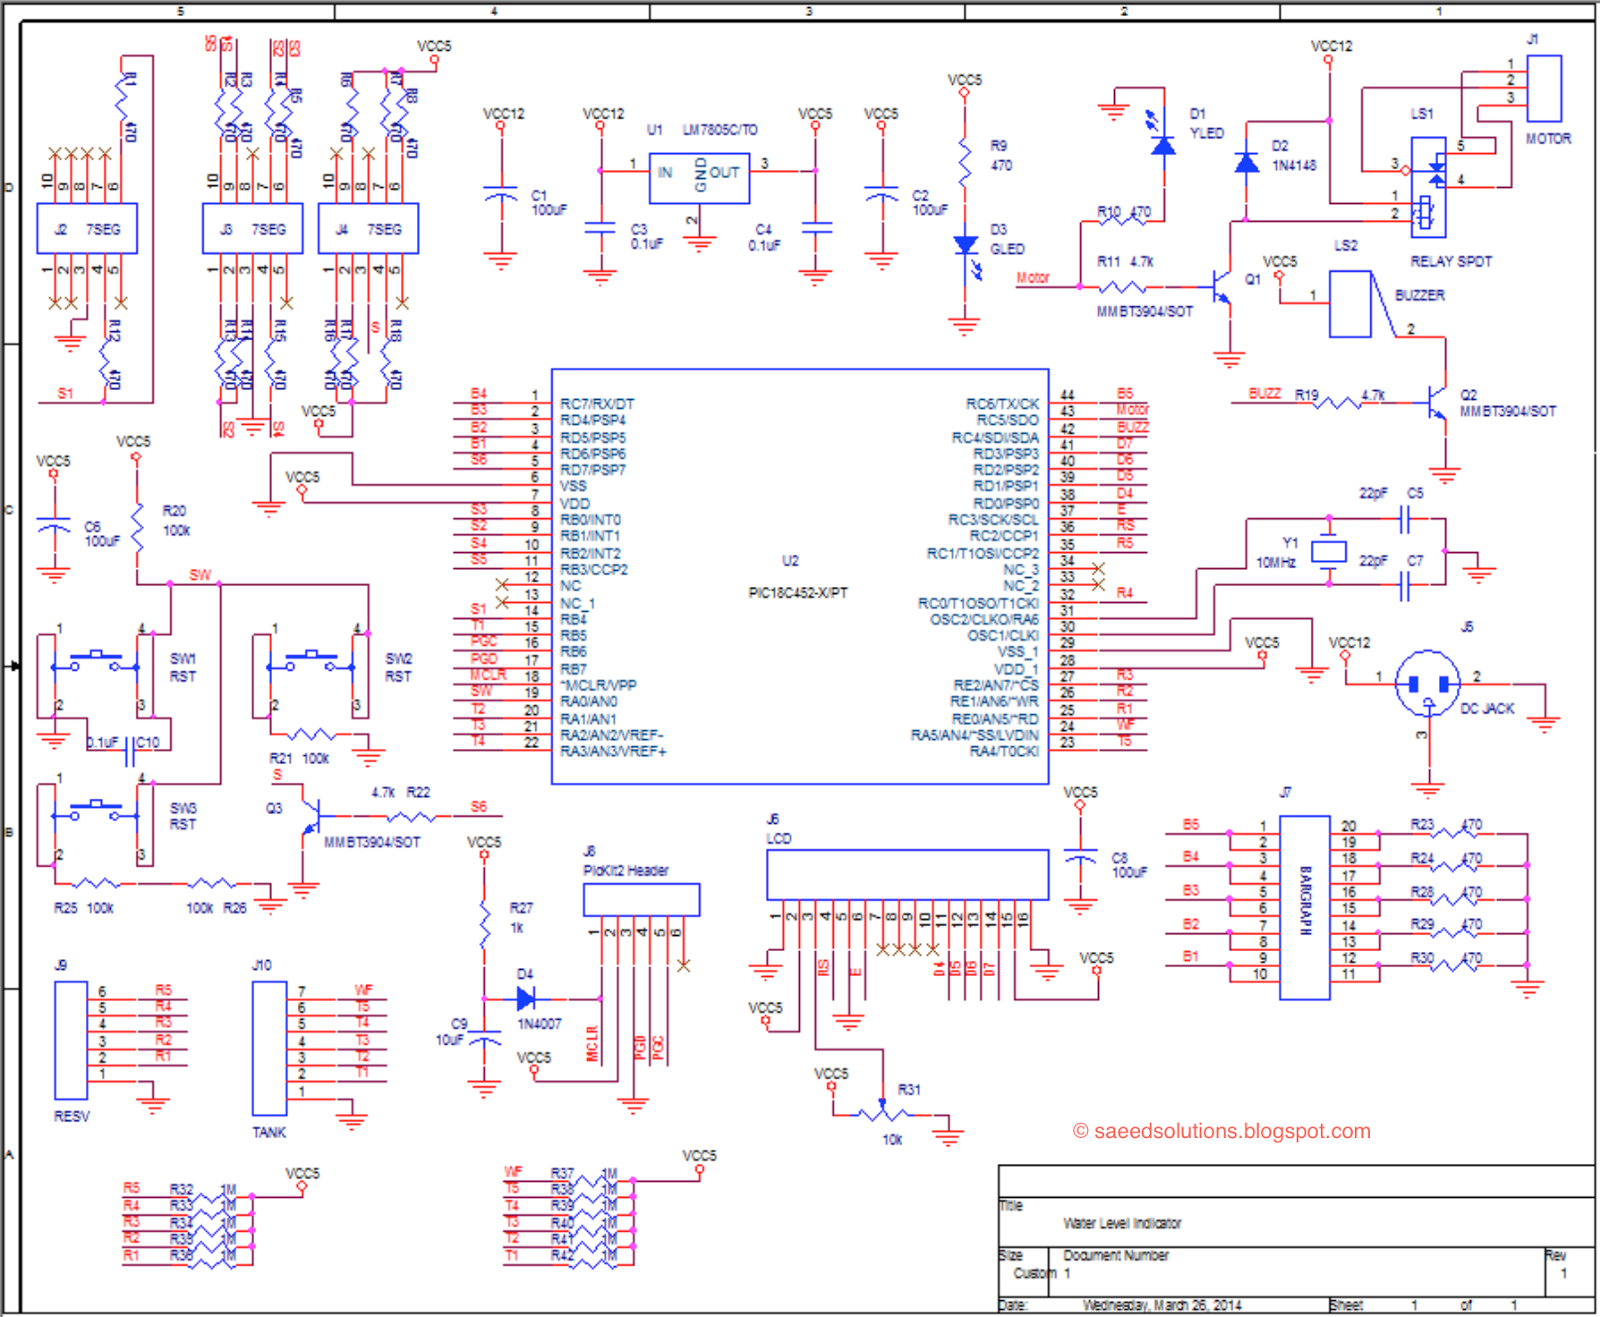 Liquid Level Controller Circuit Diagram 2002 Nissan Altima Stereo Wiring Water Indicator Using Pic Microcontroller